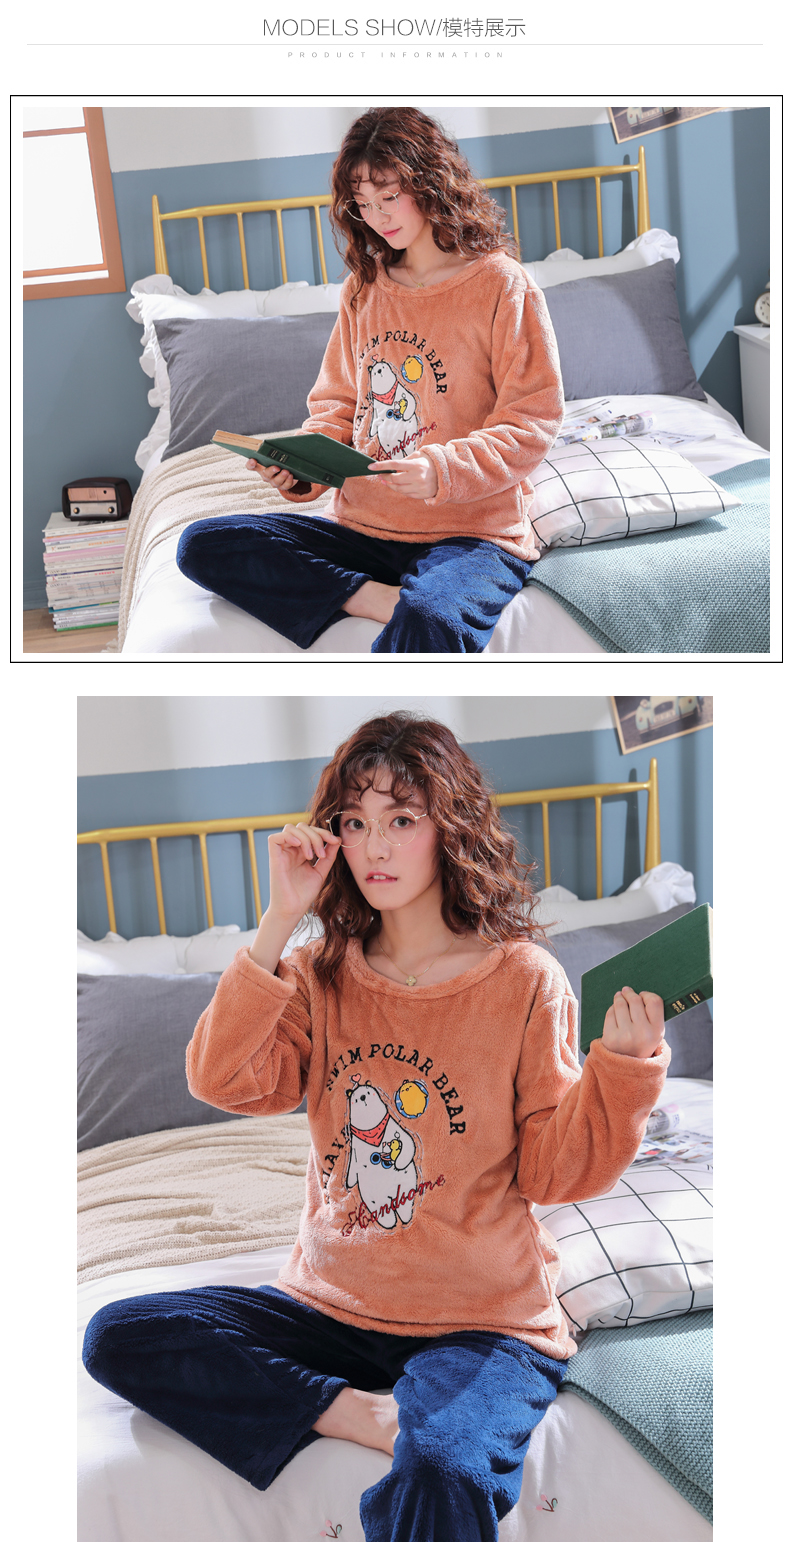 Long Sleeve Warm Flannel Pajamas Winter Women Pajama Sets Print Thicken Sleepwear Pyjamas Plus Size 3XL 4XL 5XL 85kg Nightwear 405